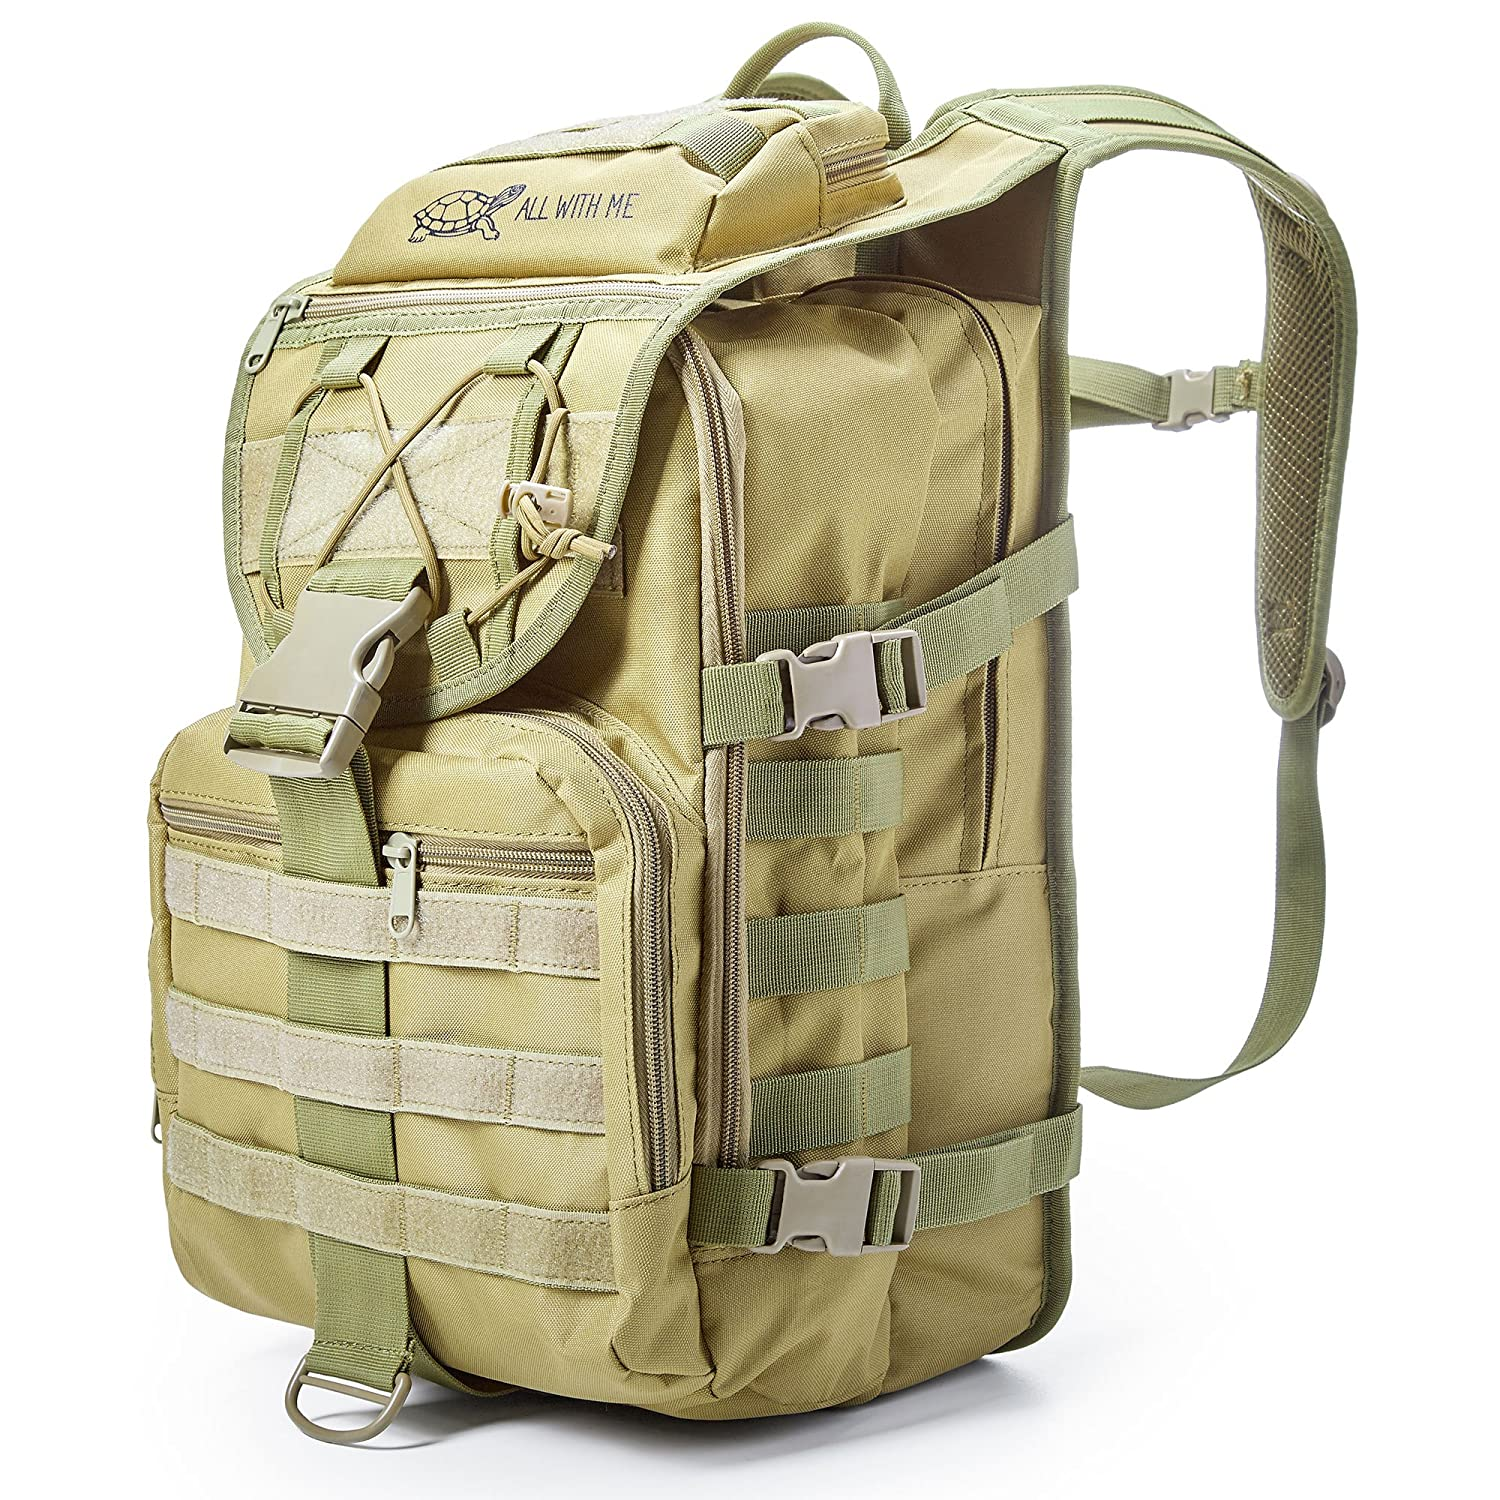 Military Tactical Backpack for Men Women - 40L Assault Pack Army Bag Molle Survival Backpack - Backpack for Hiking Camping Traveling - Laptop Backpack School Bag for Students – Dust Cover Included